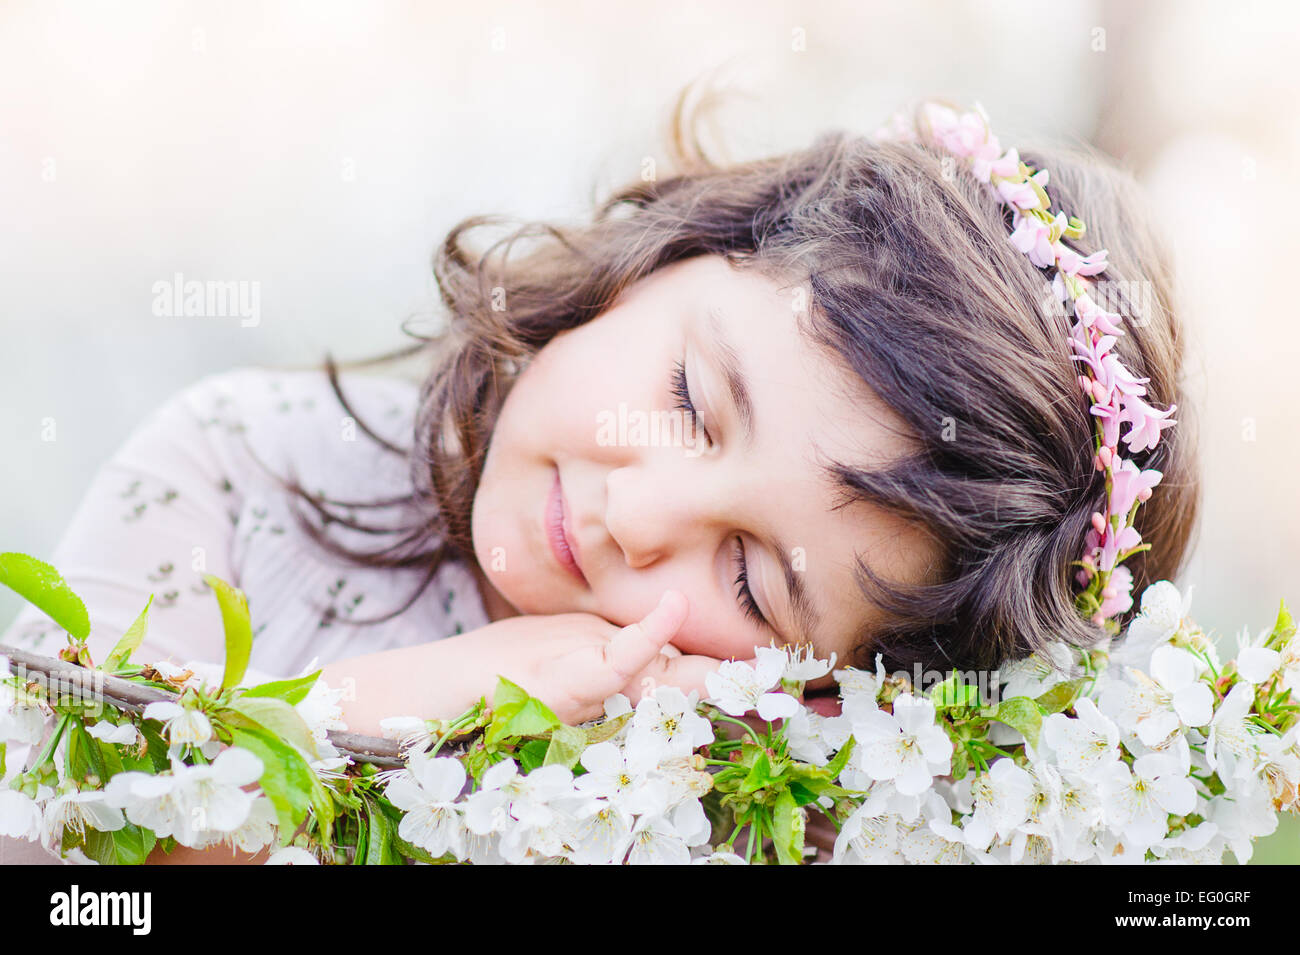 Cute girl (4-5) sleeping on flowers - Stock Image